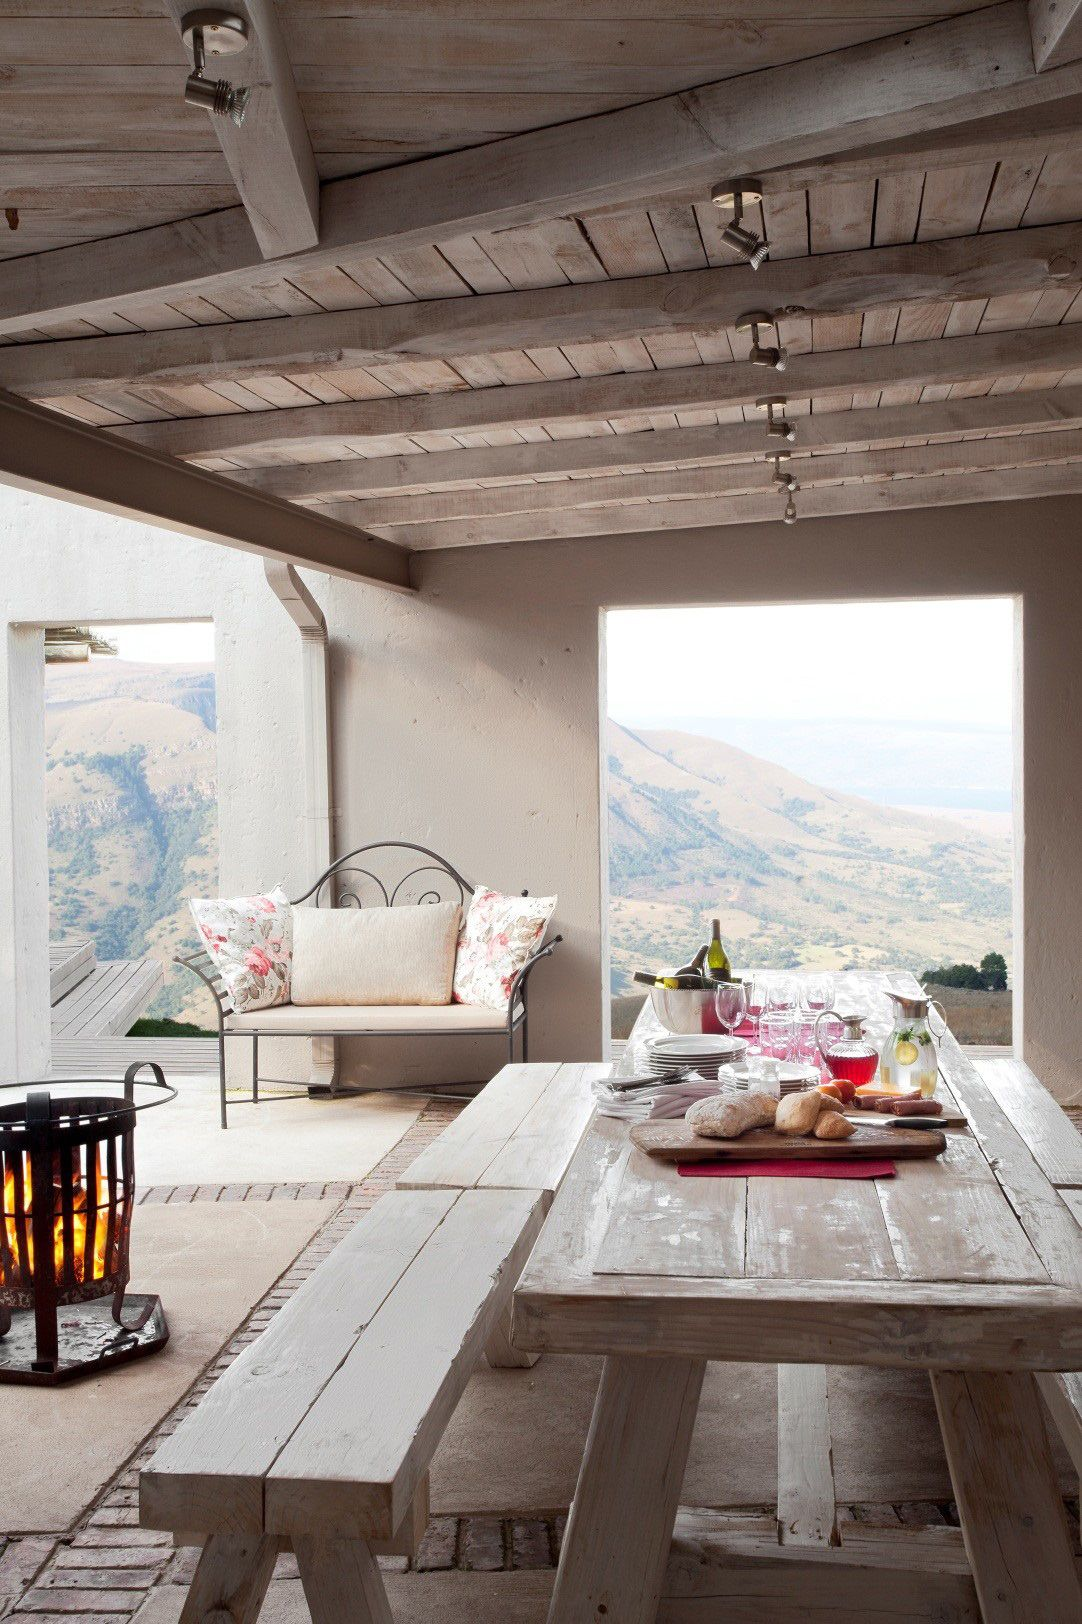 After a disastrous fire, this Dullstroom farmhouse was lovingly rebuilt and redecorated. View our image gallery of the house here.